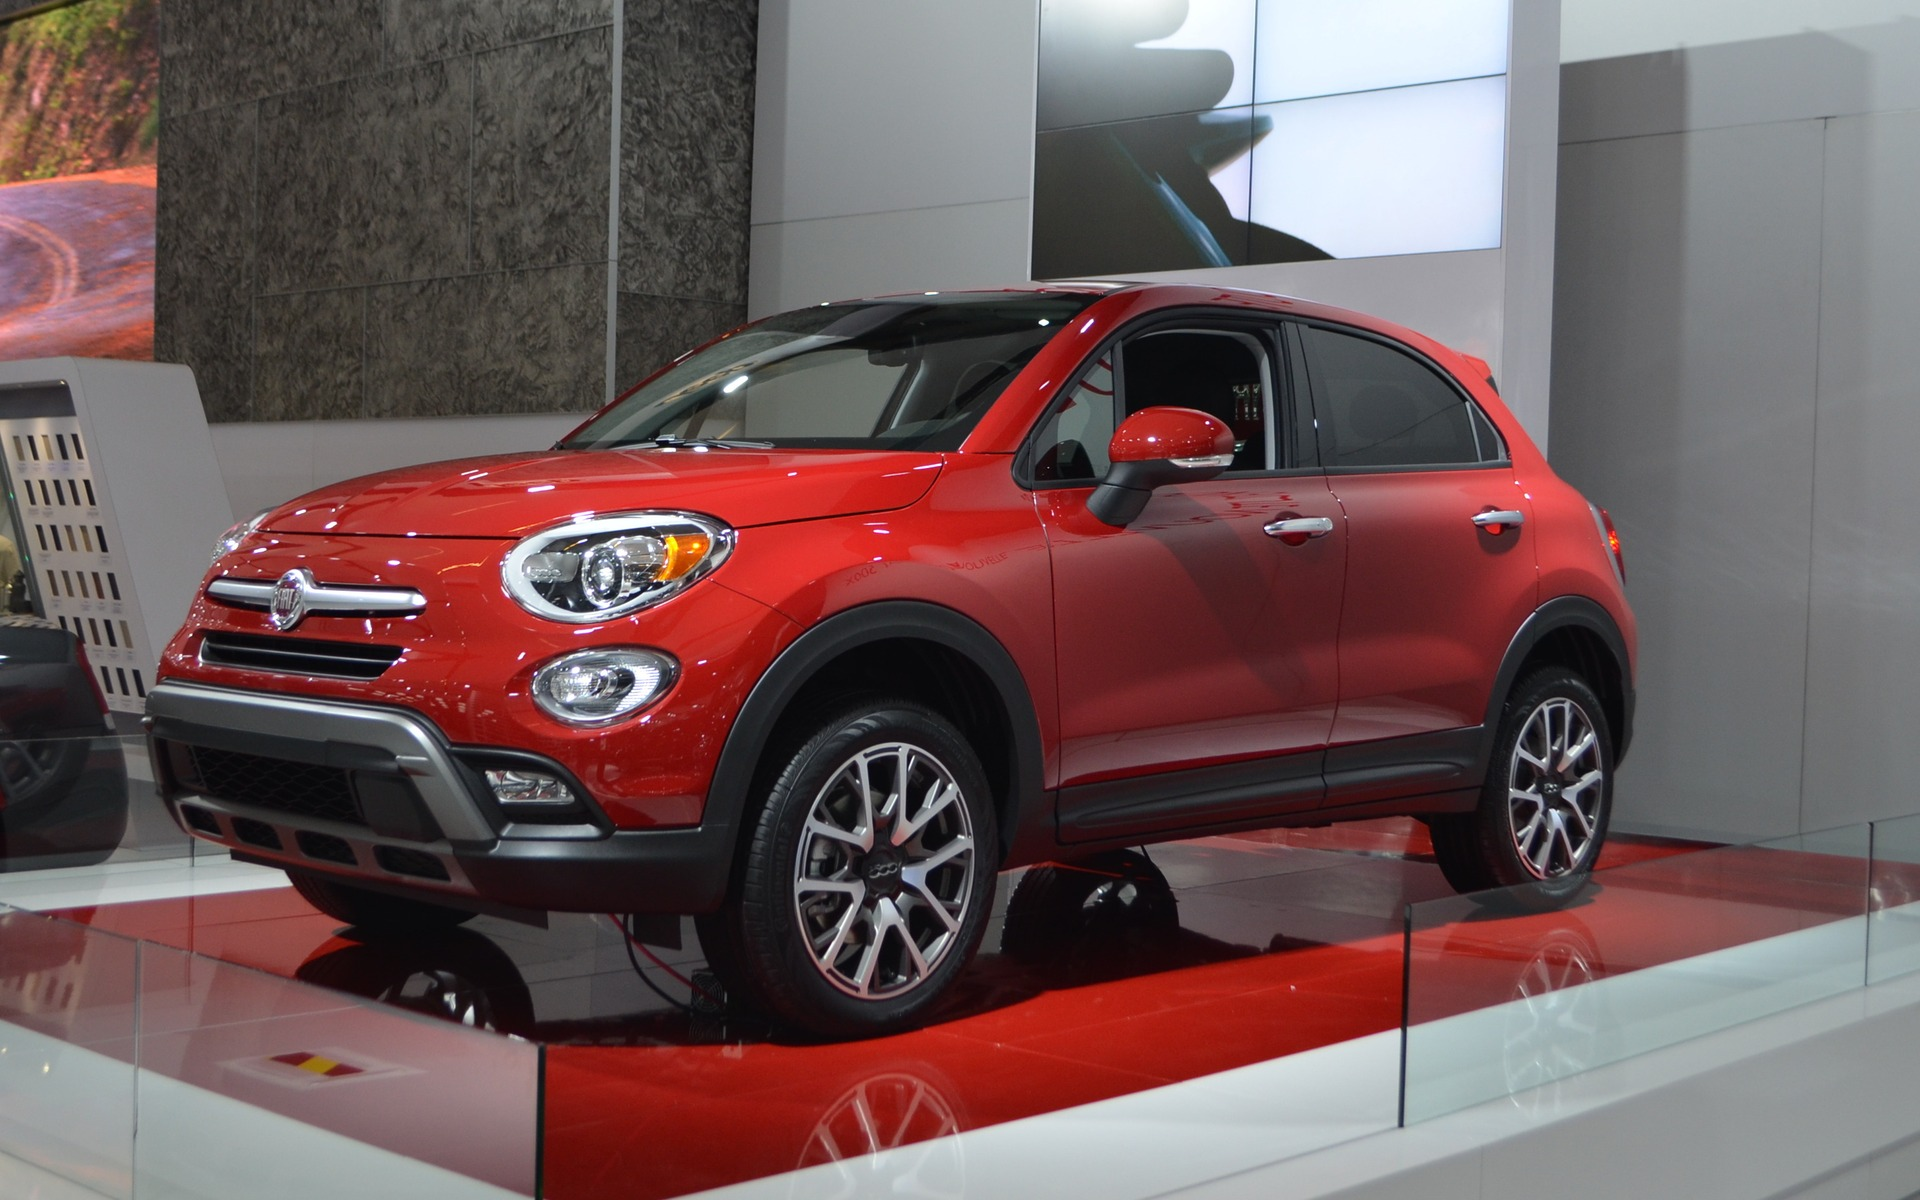 cette semaine nous ferons l 39 essai de la fiat 500x guide auto. Black Bedroom Furniture Sets. Home Design Ideas